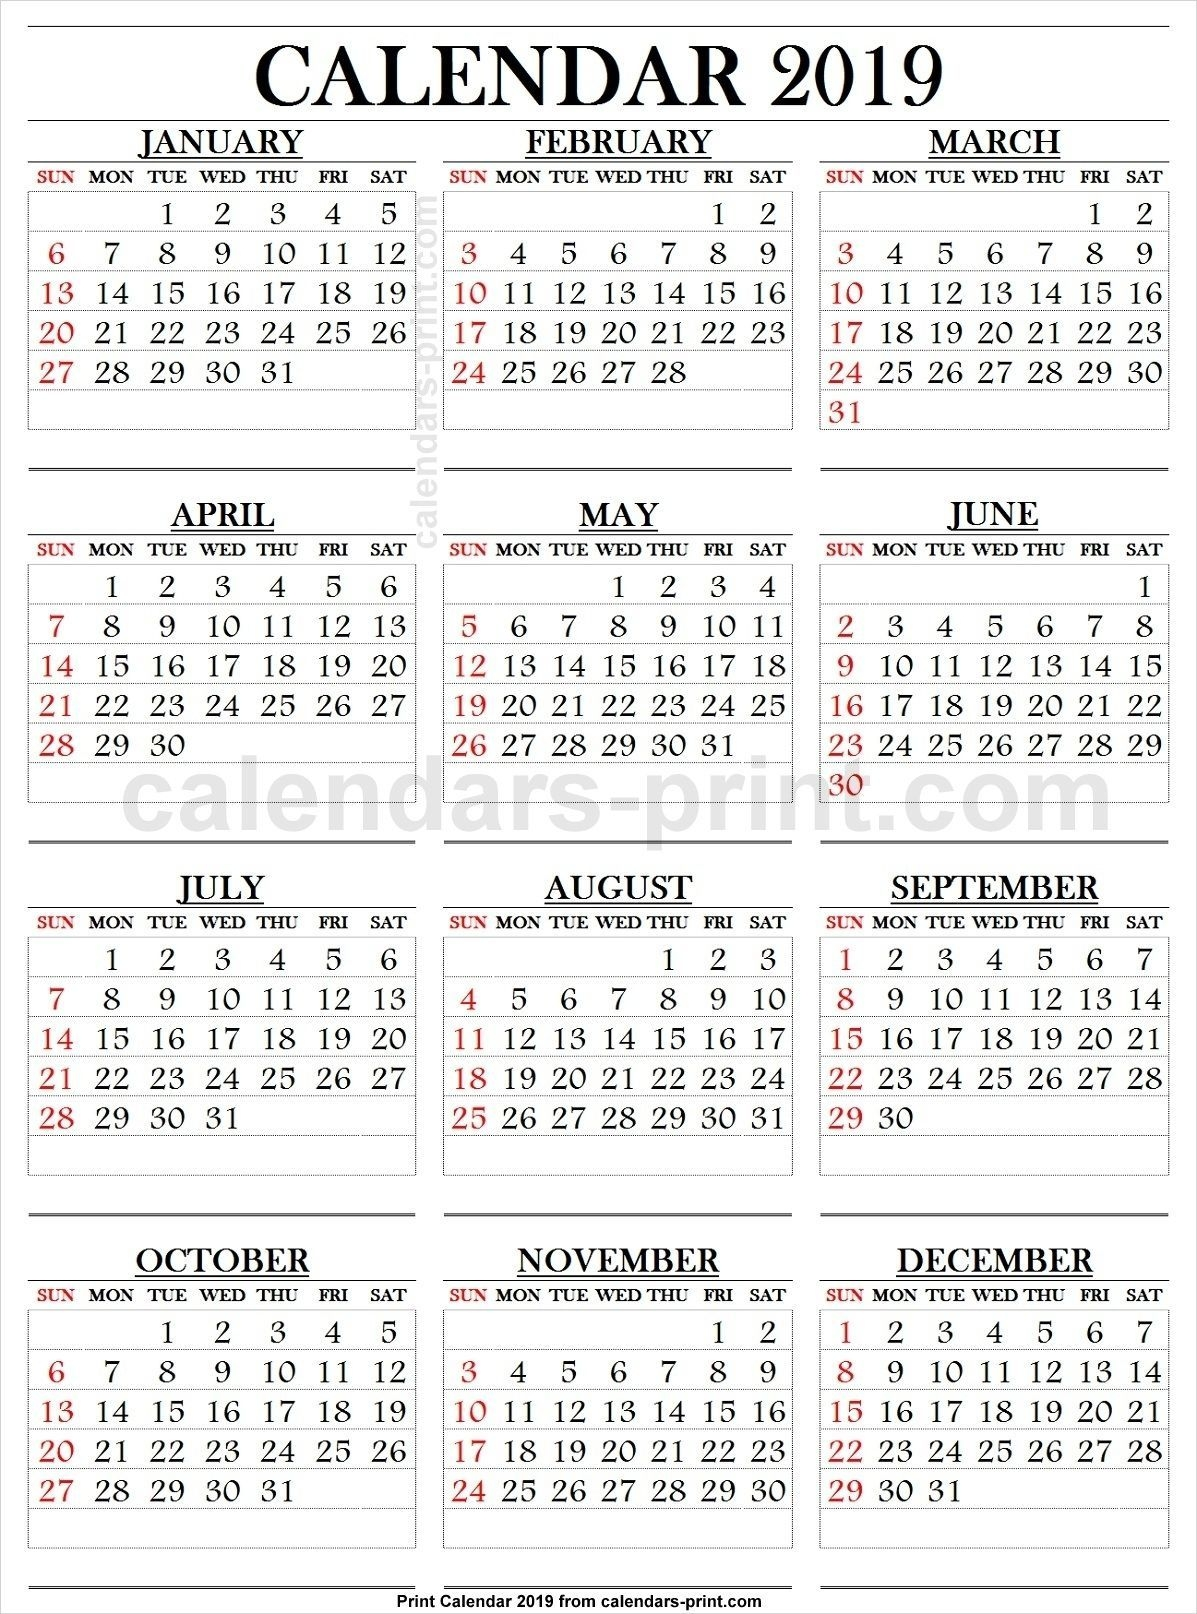 Printable Calendar Large Numbers In 2020 | Printable